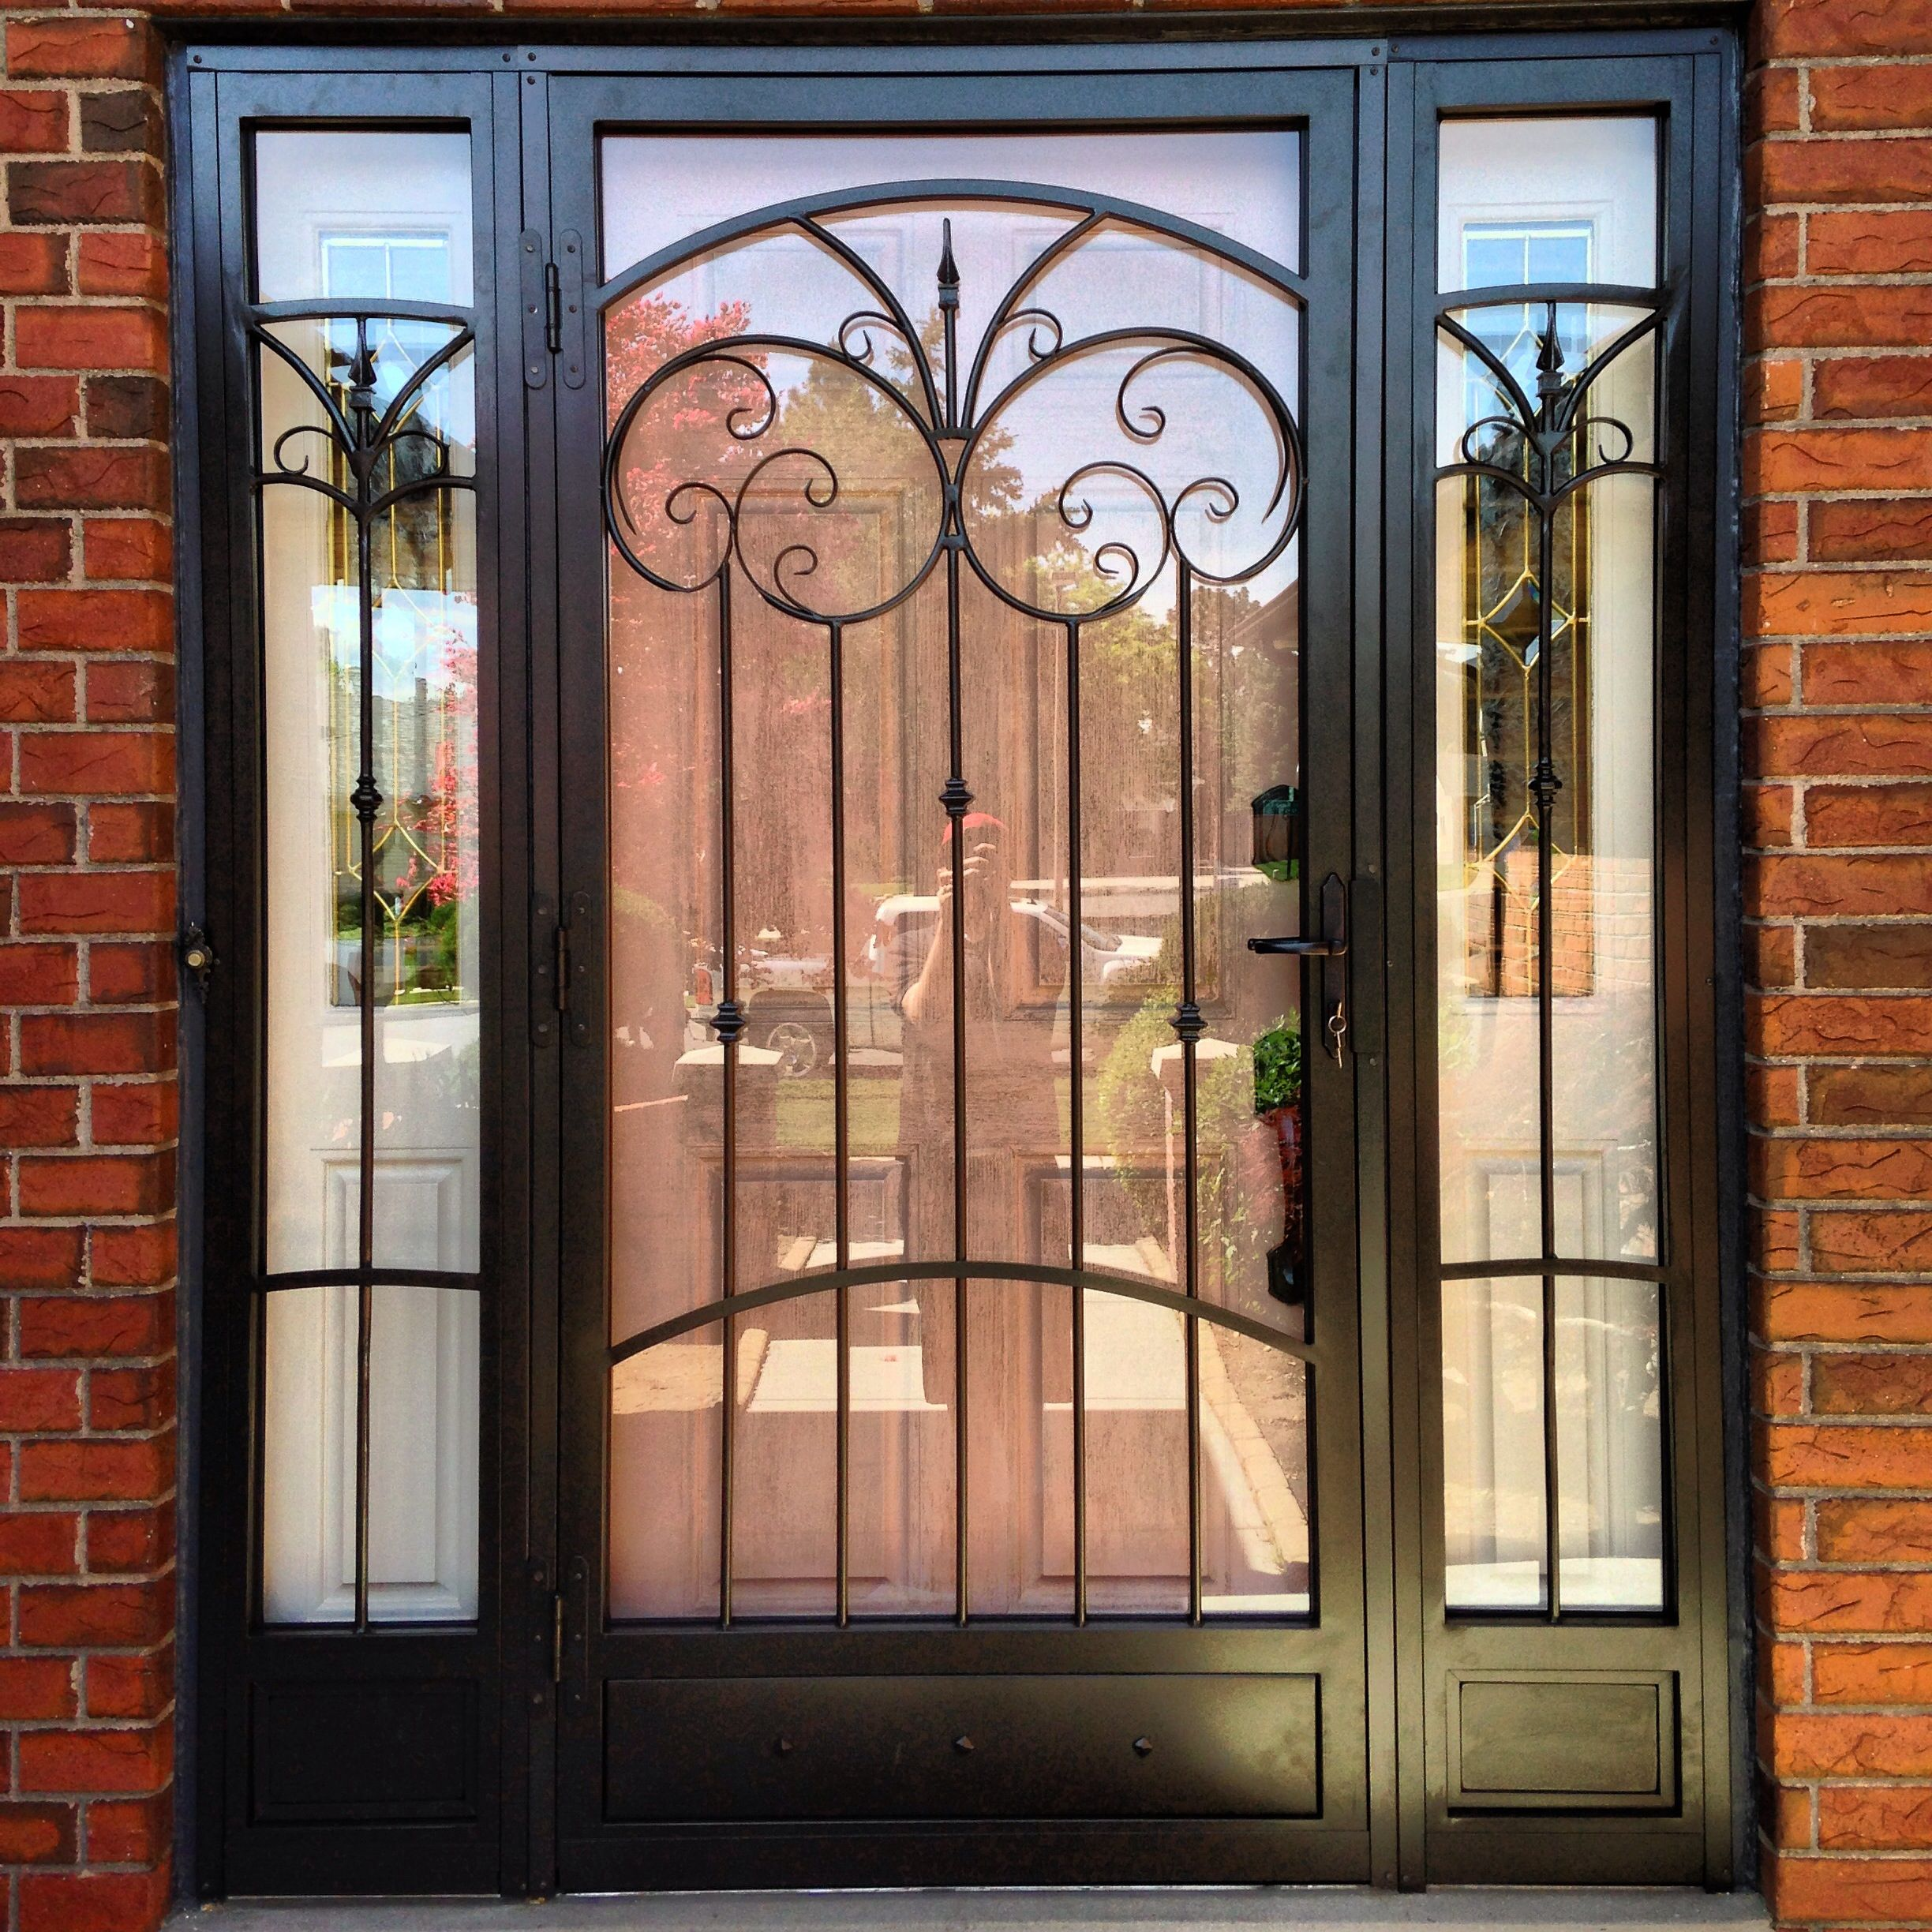 Steel Security Storm Door, Decorative Iron, Matching Sidelights